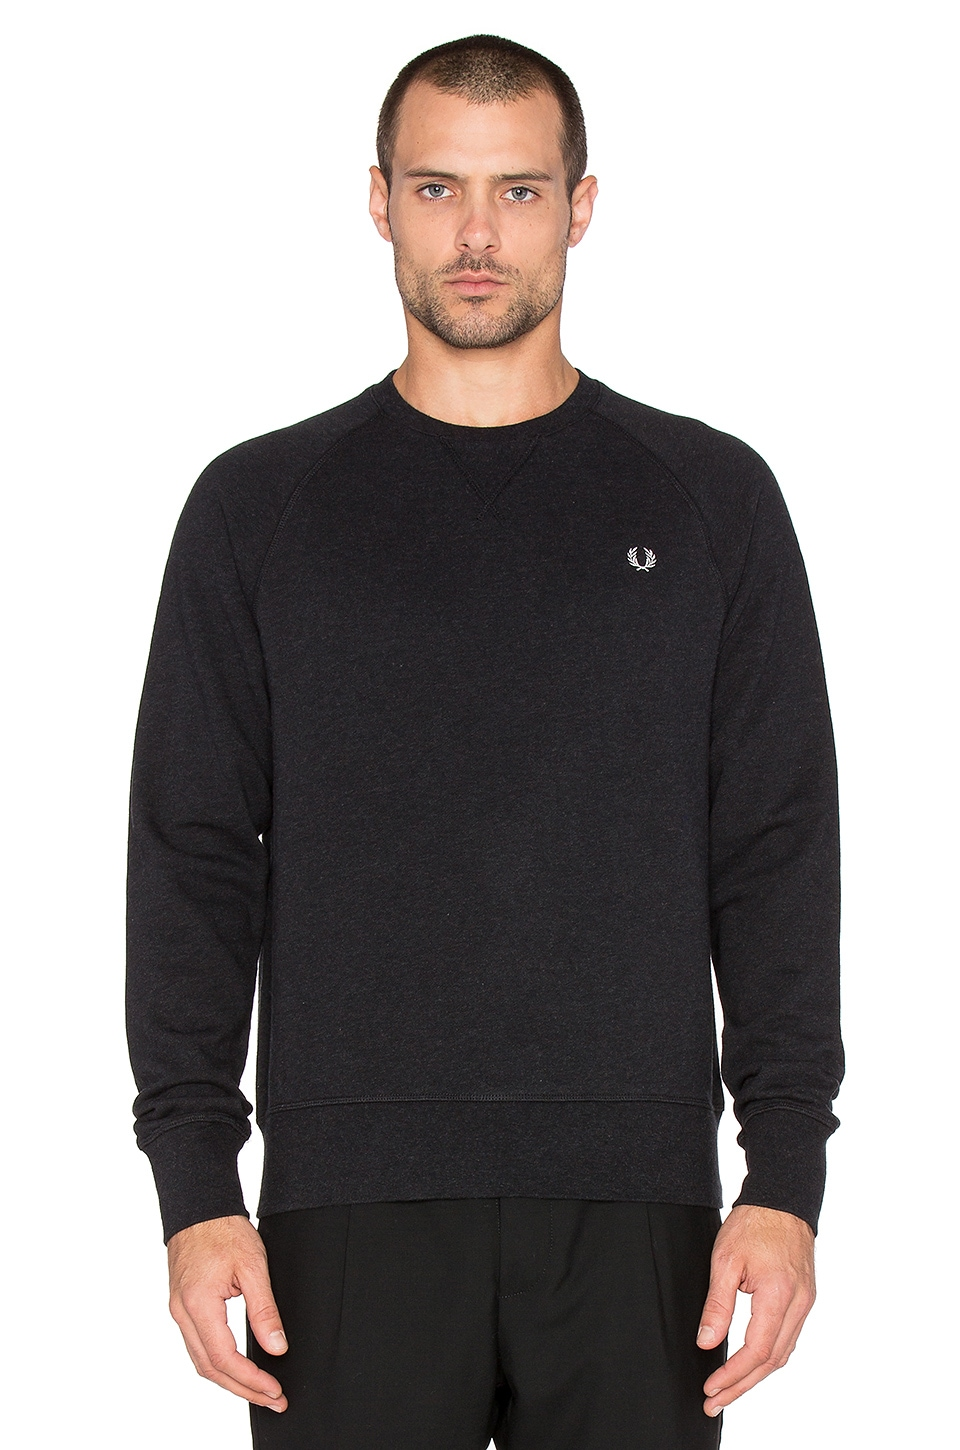 abce4f8e191 Fred Perry Loopback Crew Neck Sweatshirt in Black Marl | REVOLVE